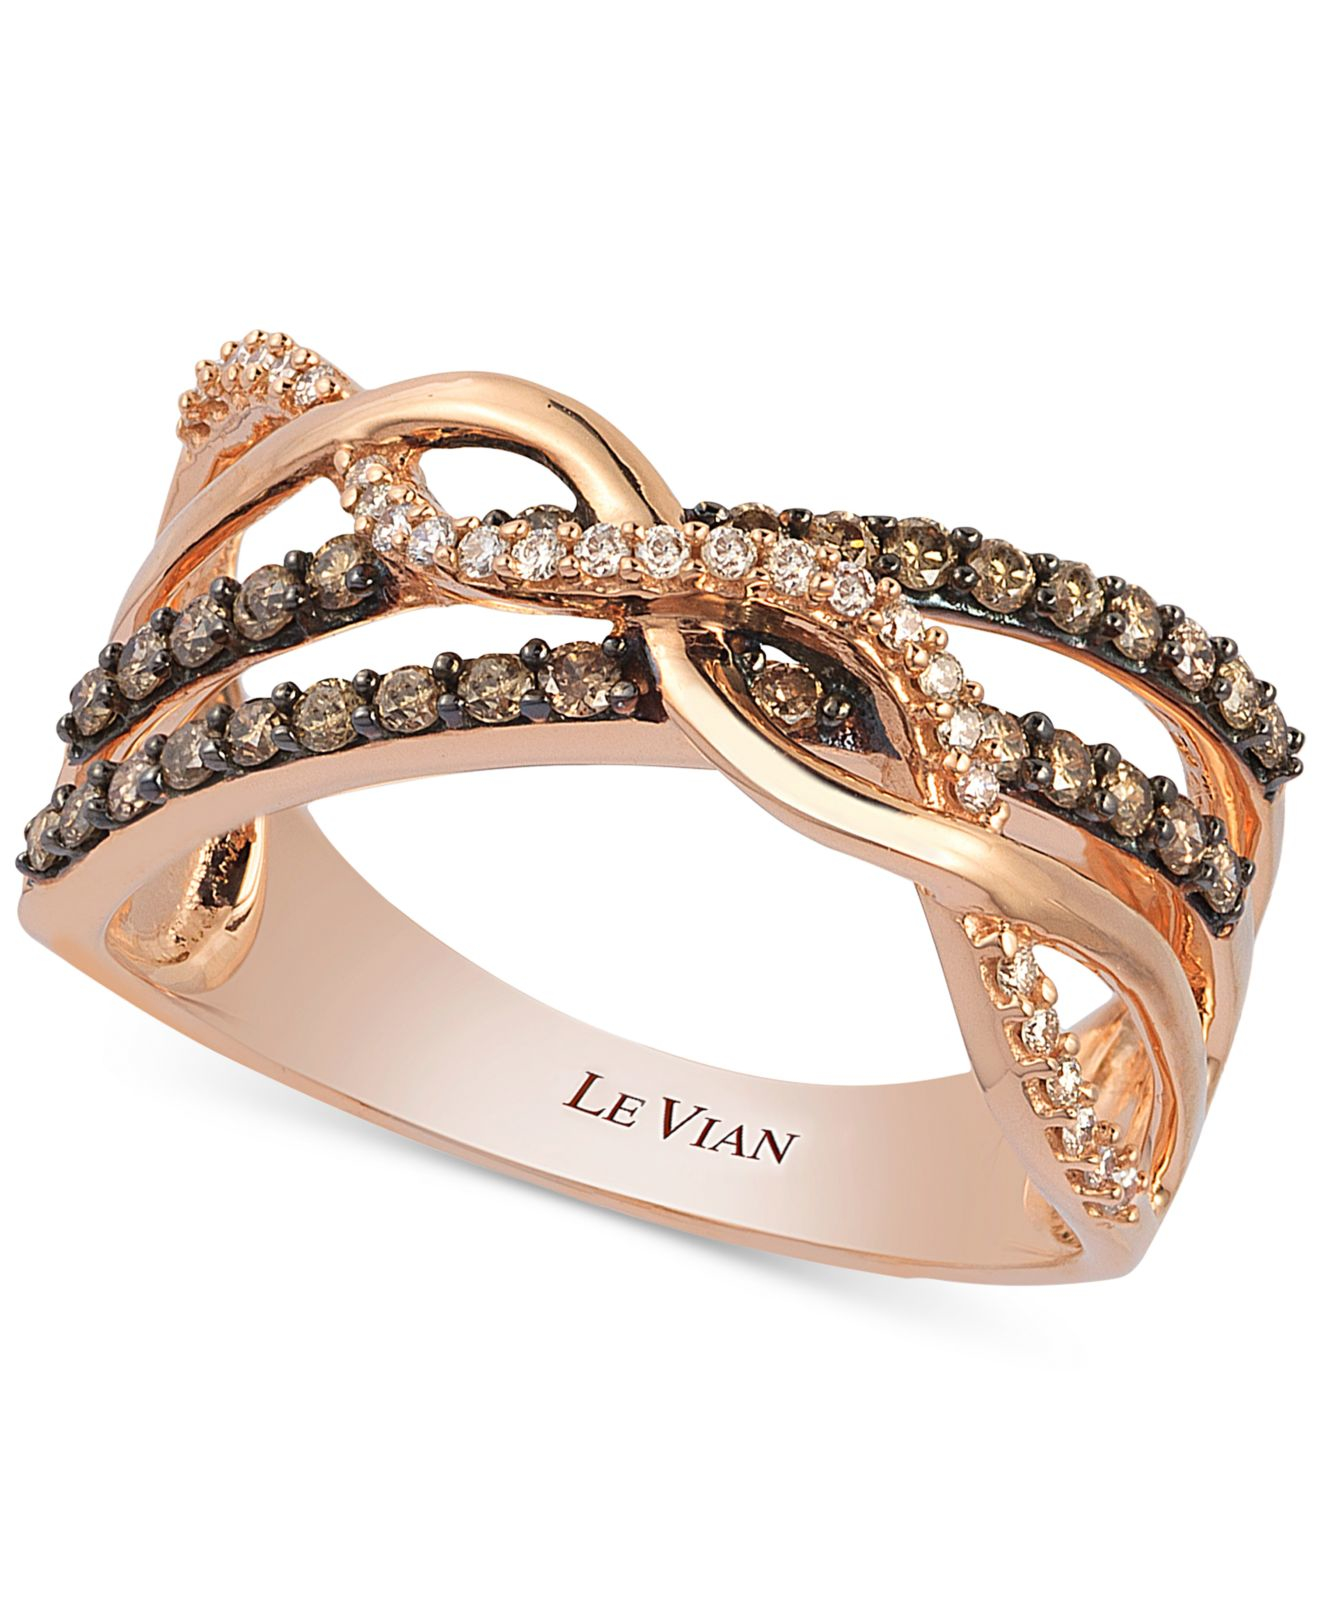 chocolate engagement zales rings le peach fresh bracelet of grace ring wedding vian strawberry jared diamonds levian diamond elegant bands